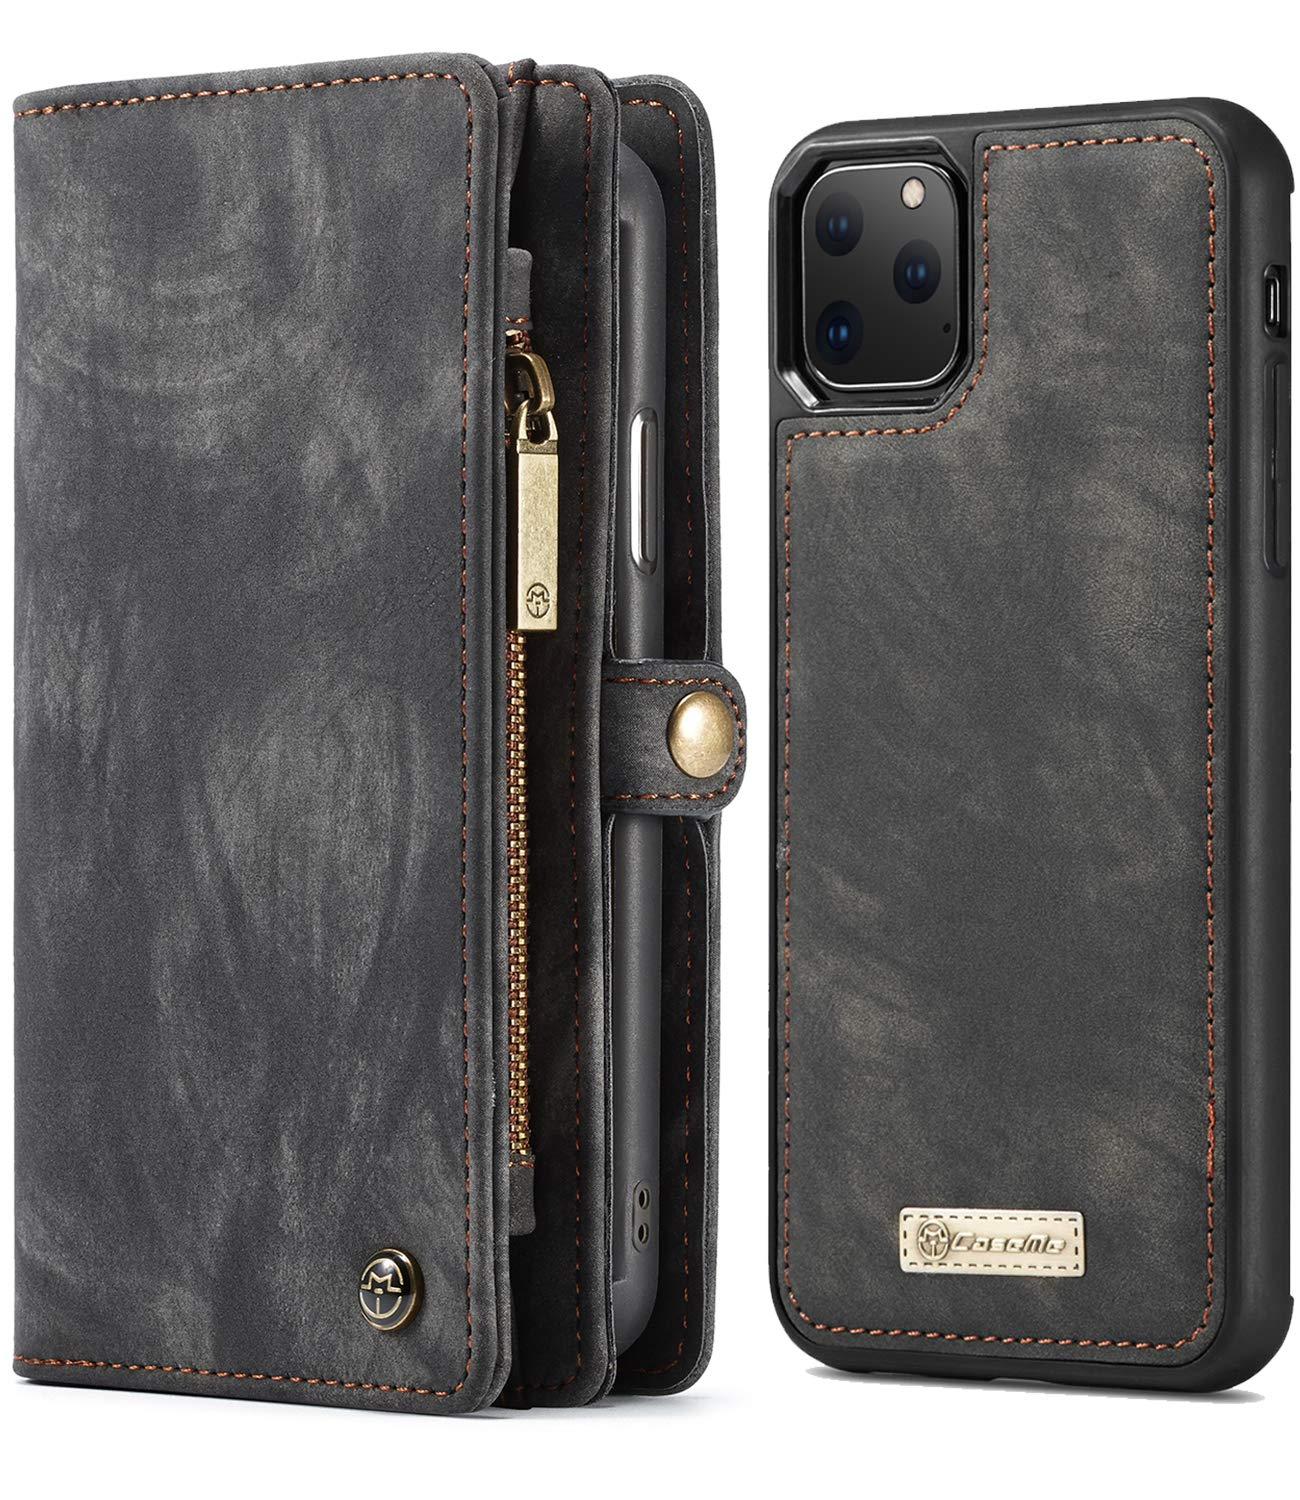 XRPow iPhone 11 Pro Max Wallet Case, [2 in 1 Detachable Magnetic] [Vegan Leather] Folio Card Pocket Clutch Case for iPhone 11 Pro Max (6.5Inch) Removable Slim Shock Protection Flip Cover - Black